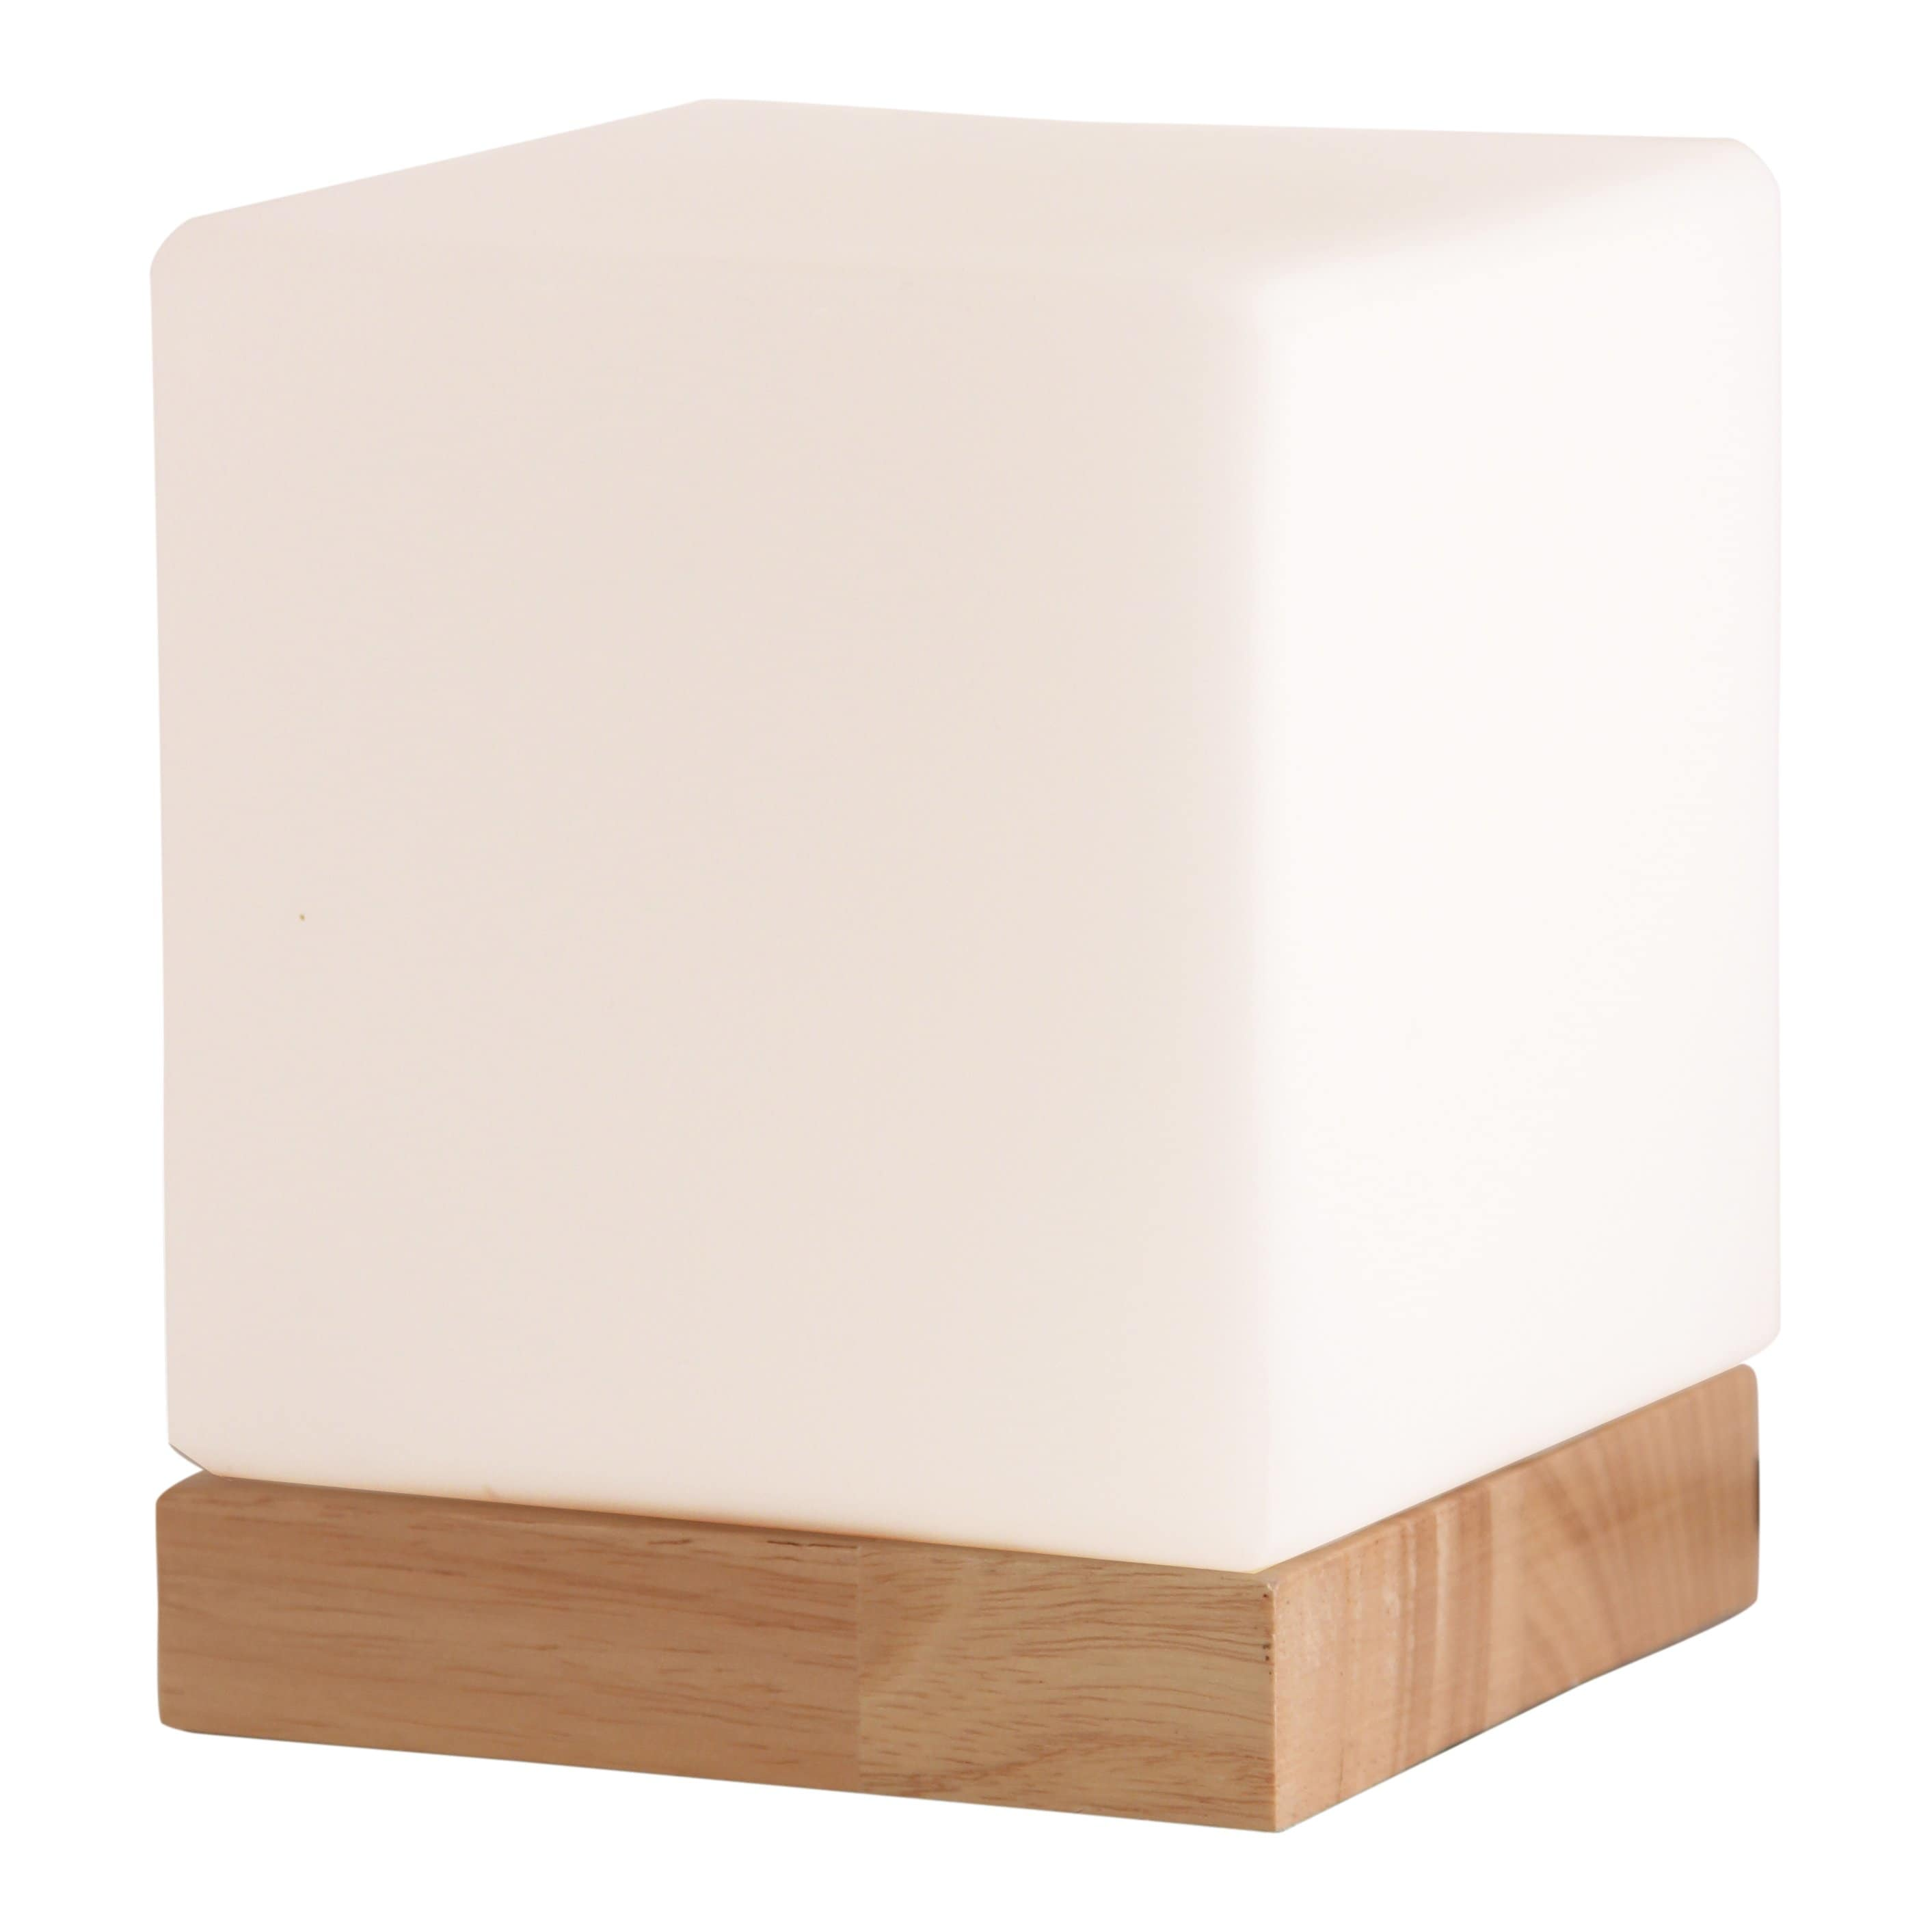 light accents small table lamp cube accent glass shade with natural wooden base lamps round drum side pacific cool bar mosaic kitchen modern furniture design ese fine linens gold